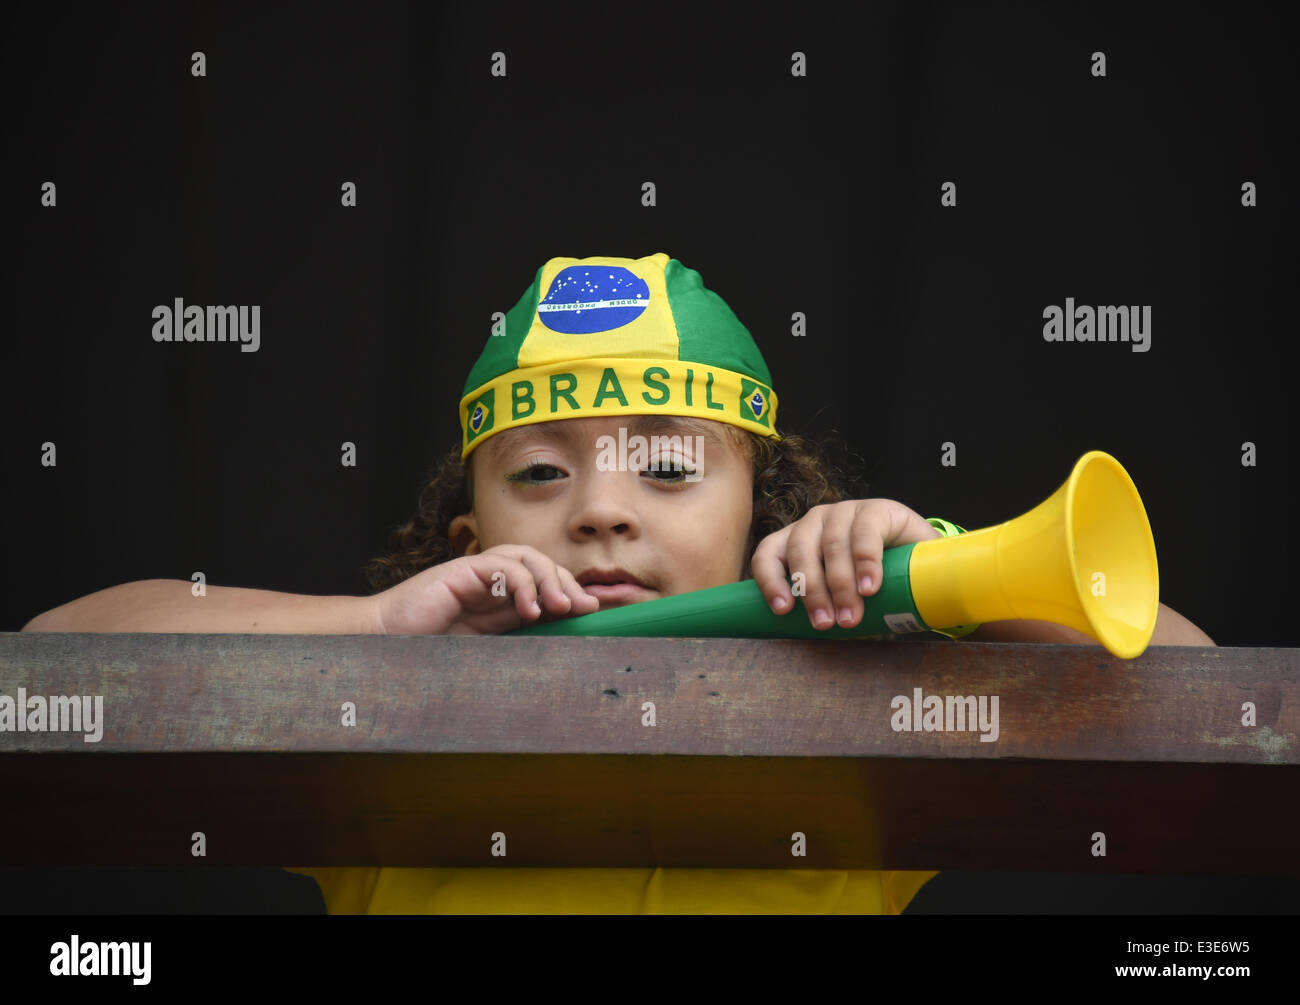 Porto Seguro, Brazil. 23rd June, 2014. A Brazilian kid is seen during a public viewing at the bar 'Toa Toa' - Stock Image